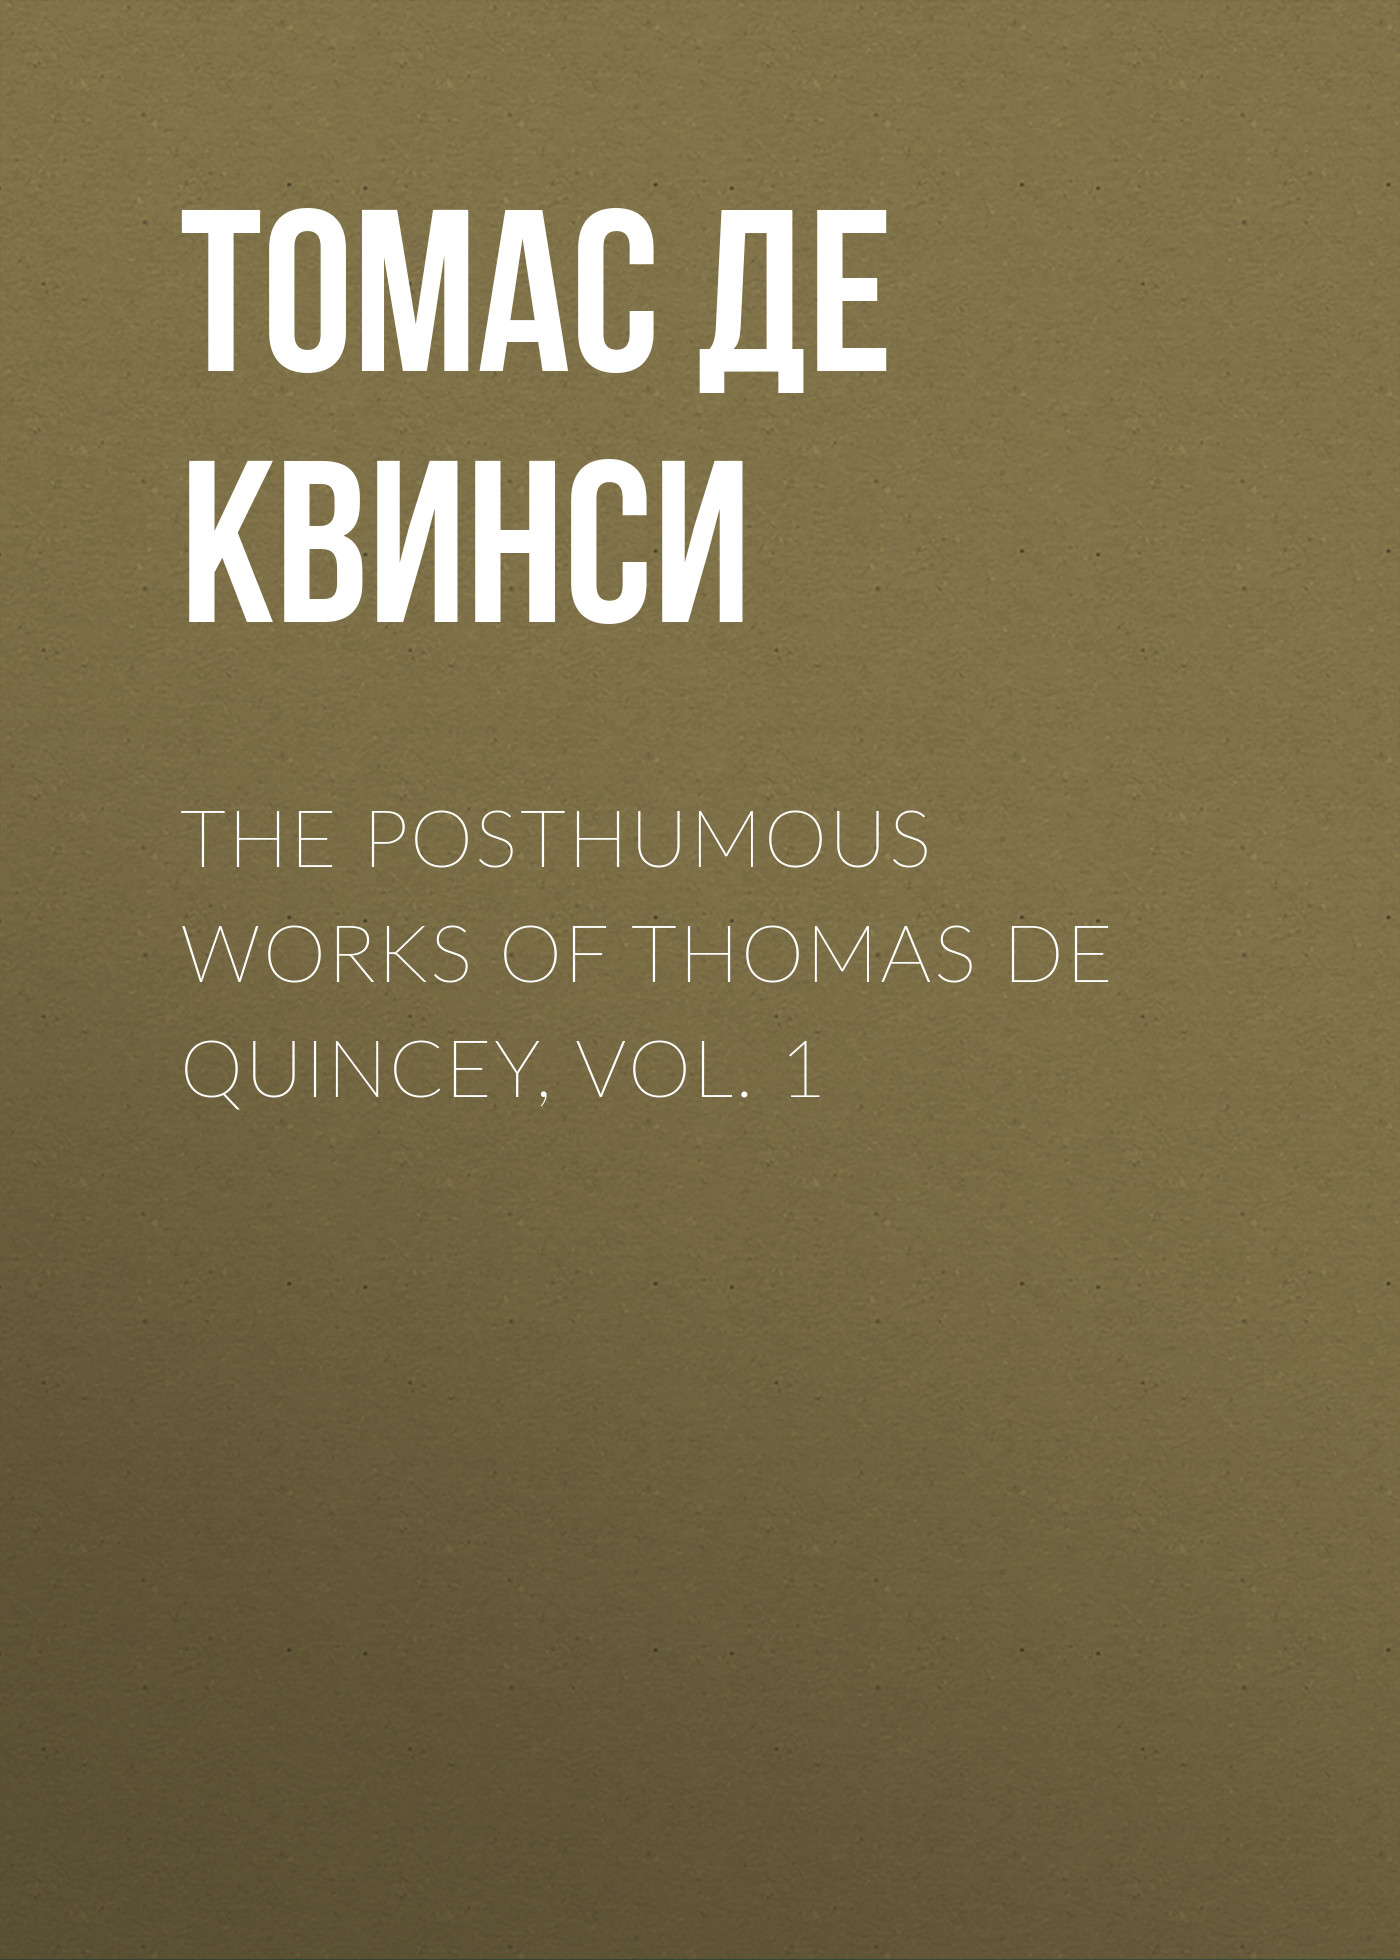 купить Томас де Квинси The Posthumous Works of Thomas De Quincey, Vol. 1 онлайн